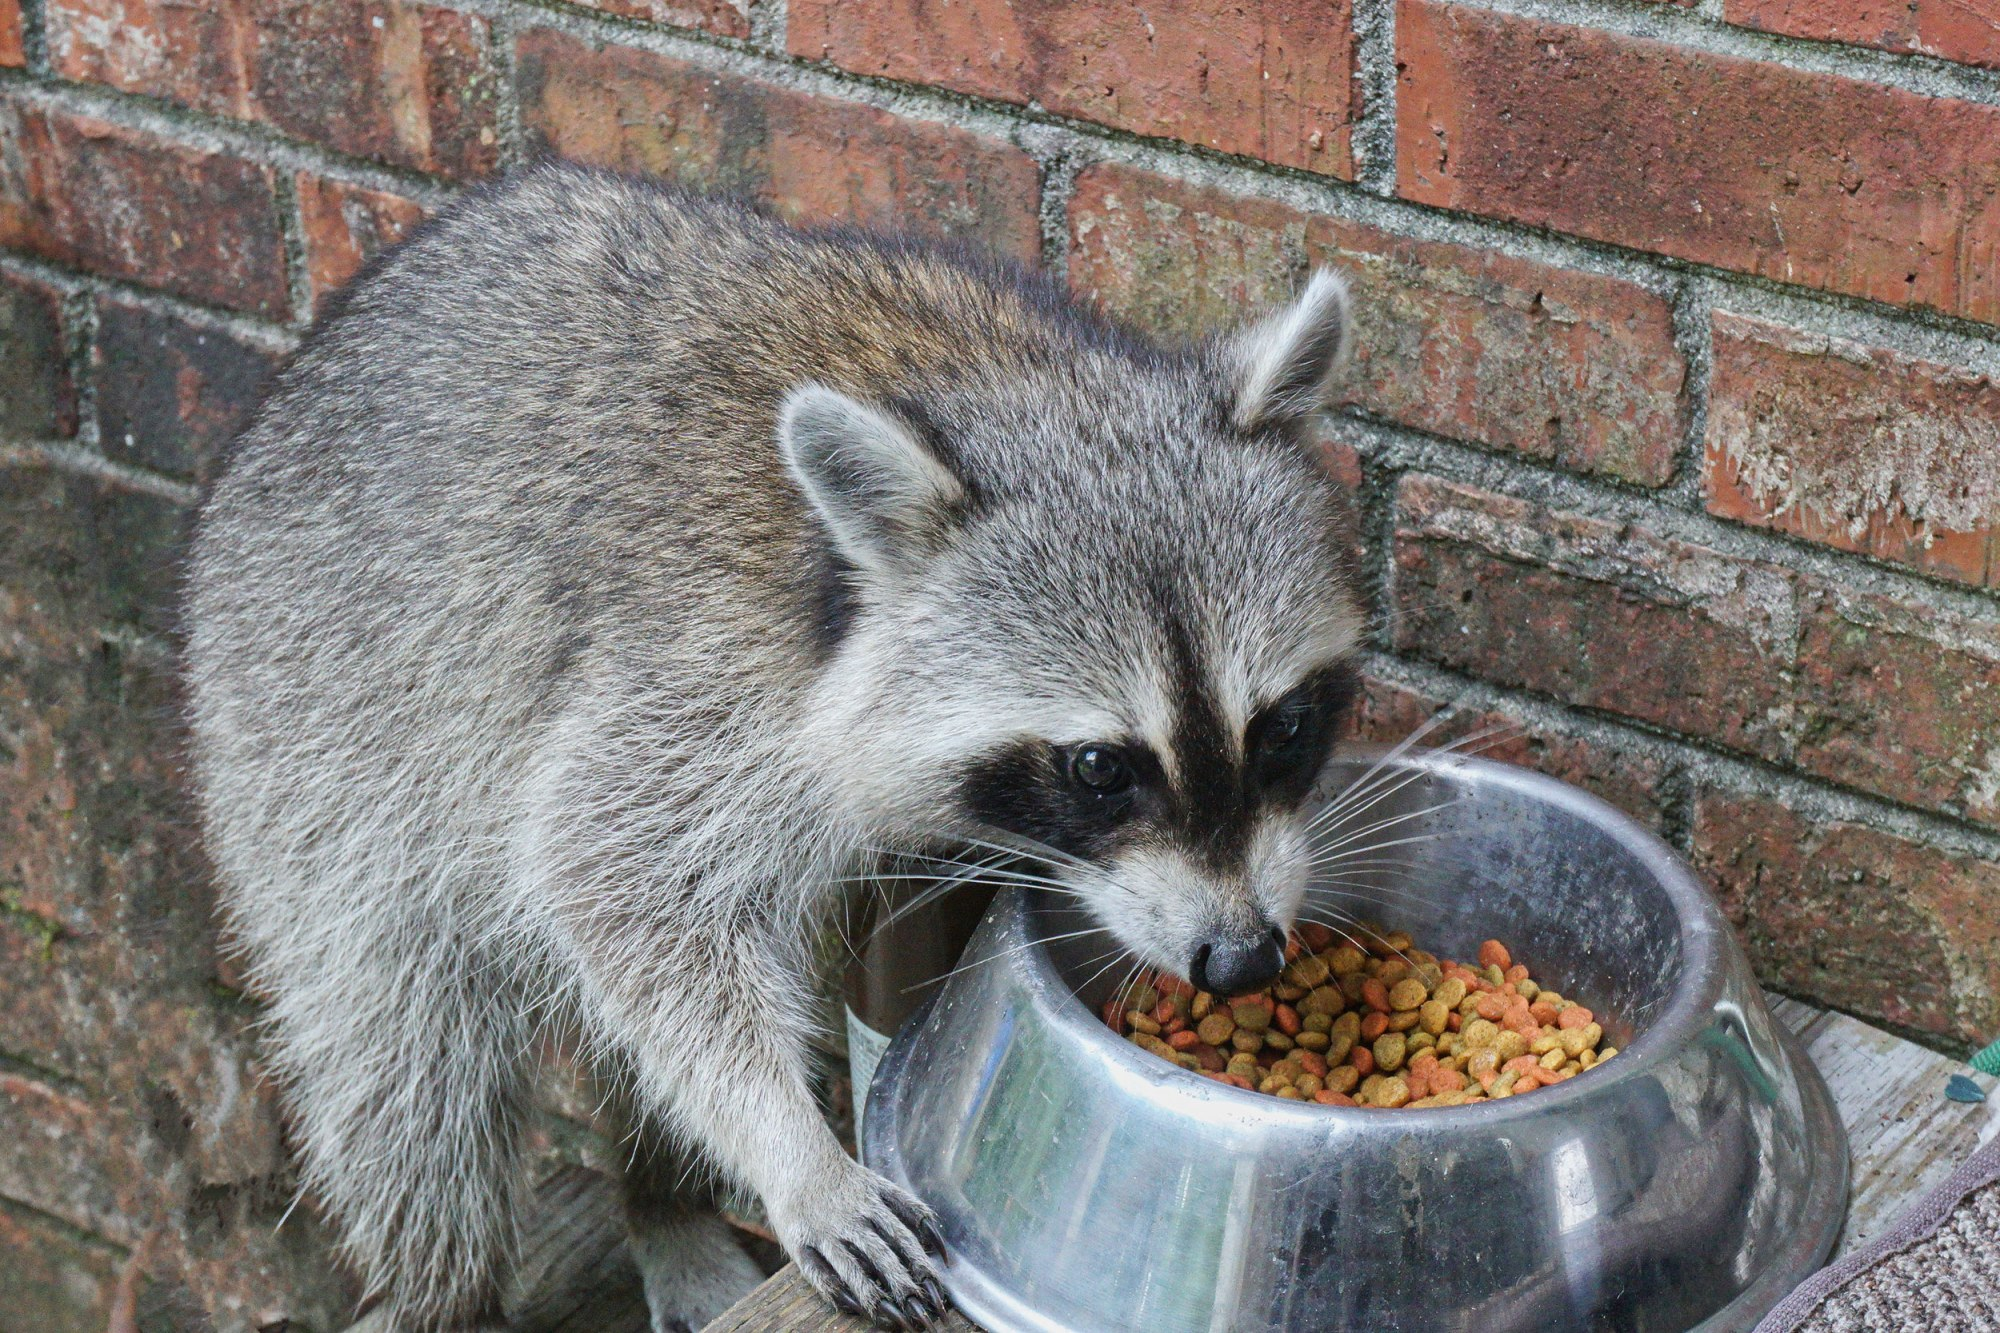 raccoon eating from a dog bowl